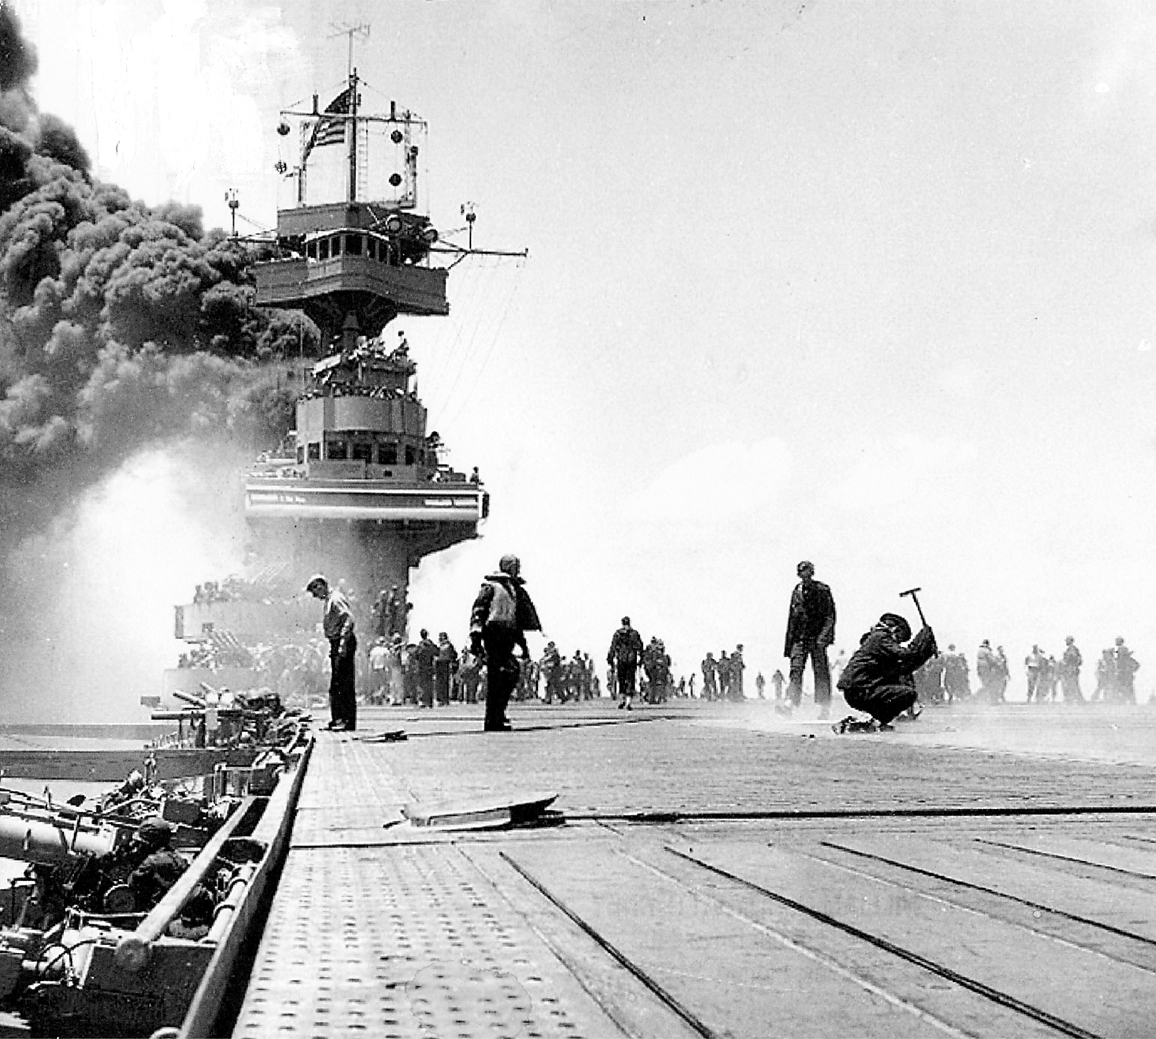 battle of midway At the battle of midway, 4-6 june 1942, american carriers yorktown cv-5, enterprise cv-6 and hornet cv-8 defeated a superior japanese force.